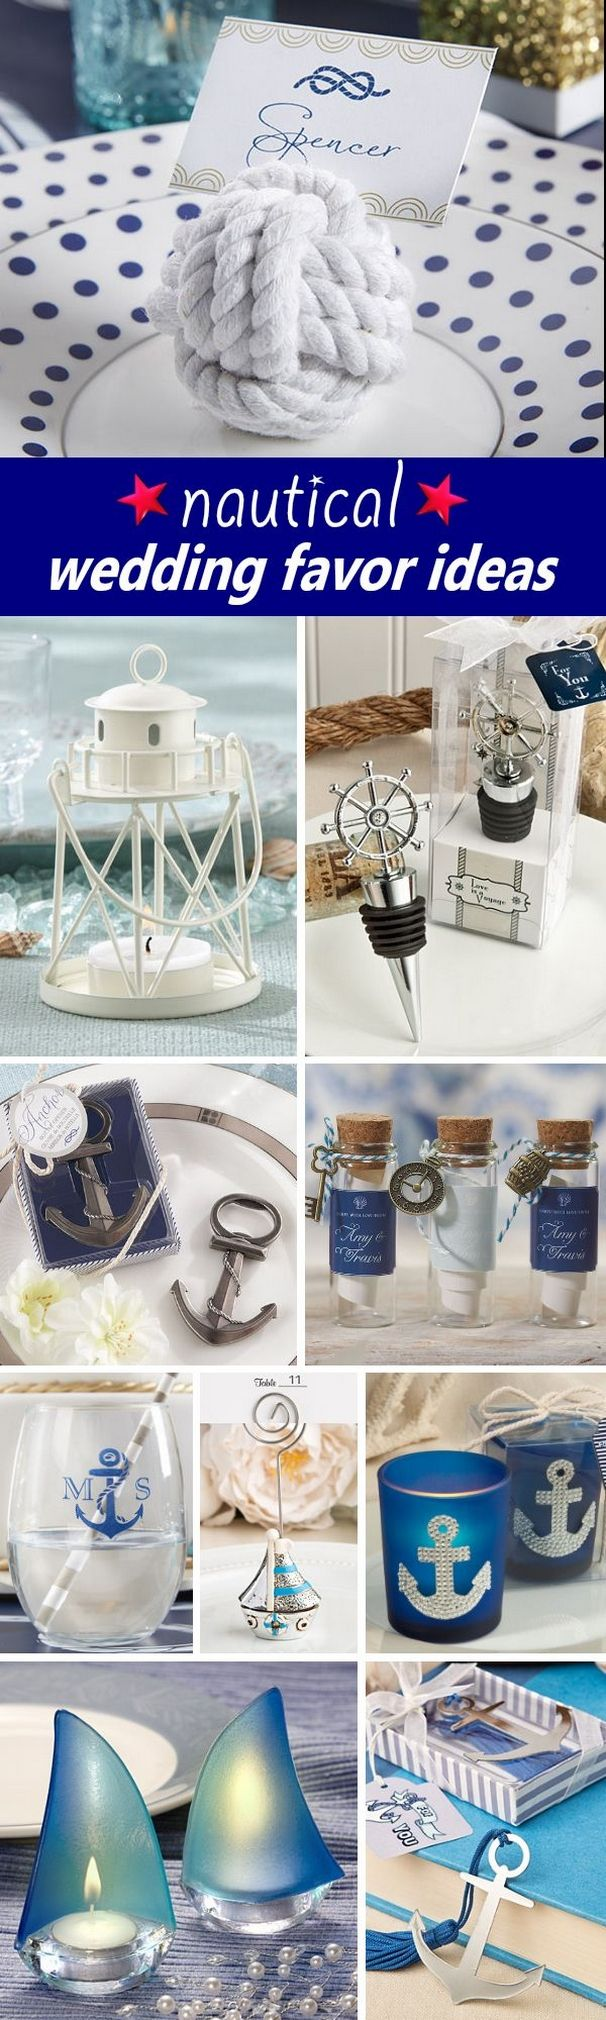 90 Ideas Nautical Centerpieces For Summer Wedding https://bridalore.com/2017/04/07/90-ideas-nautical-centerpieces-for-summer-wedding/